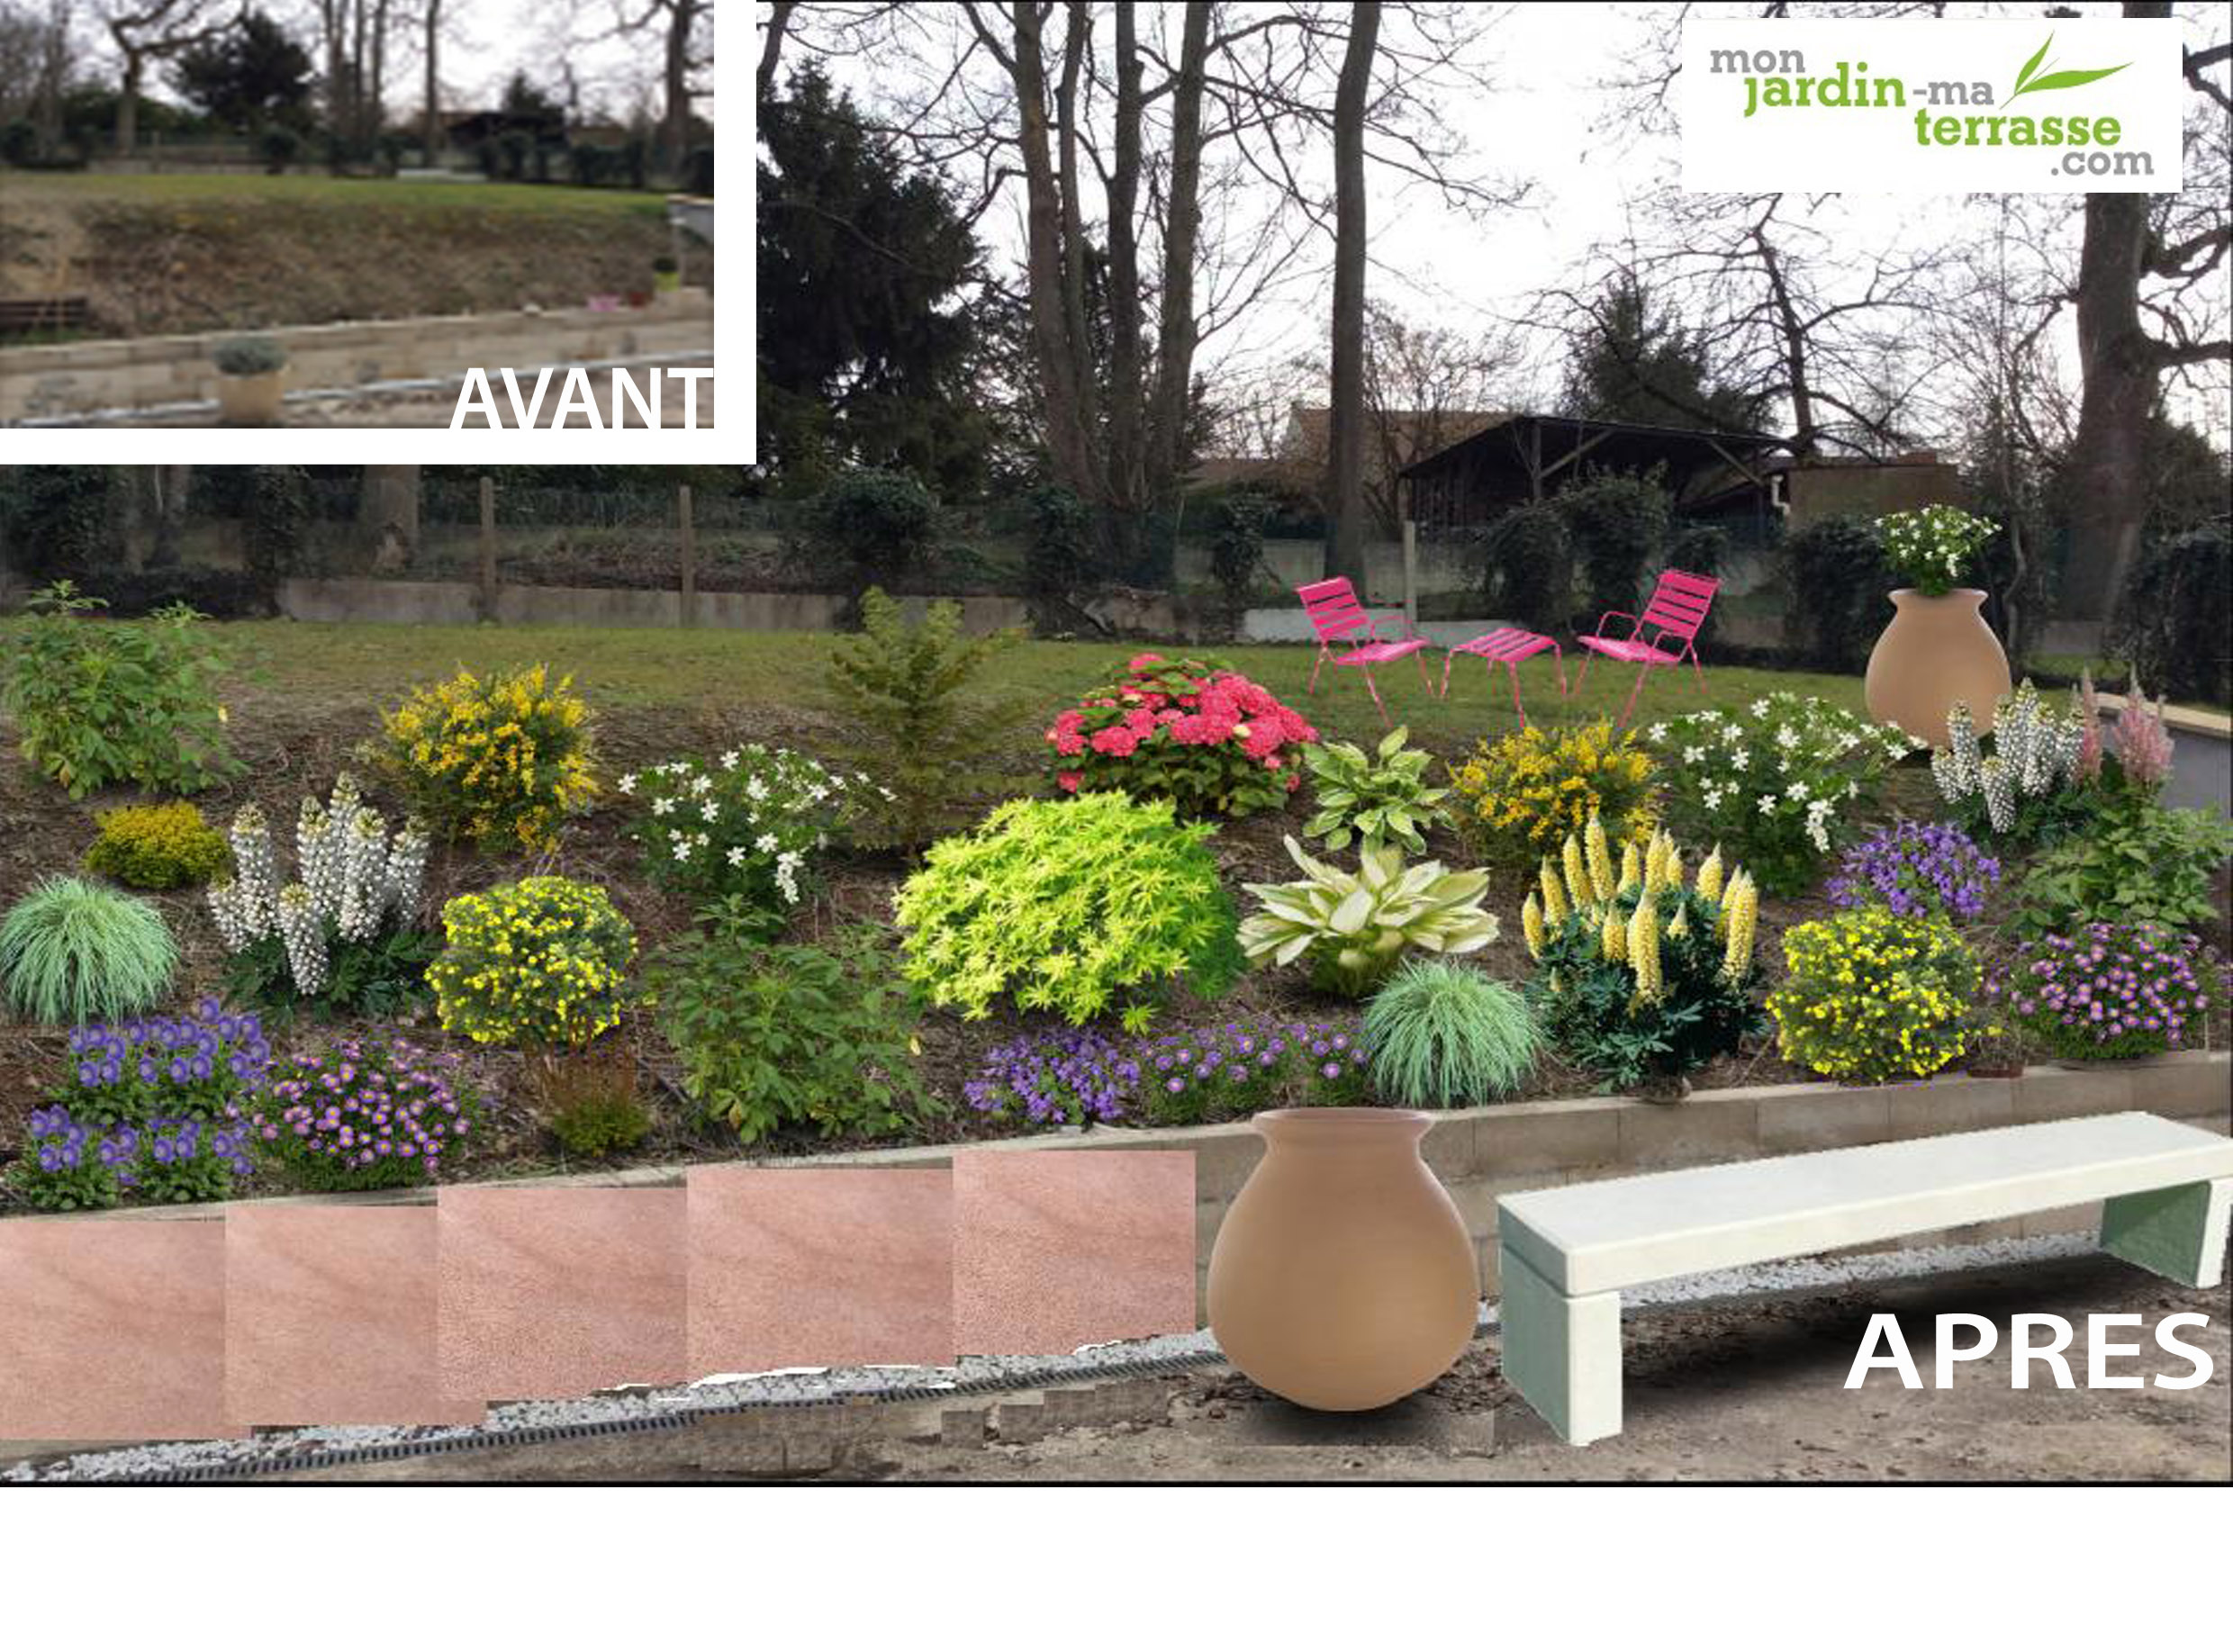 Am nager un talus en pente l ombre monjardin for Amenagement talus jardin